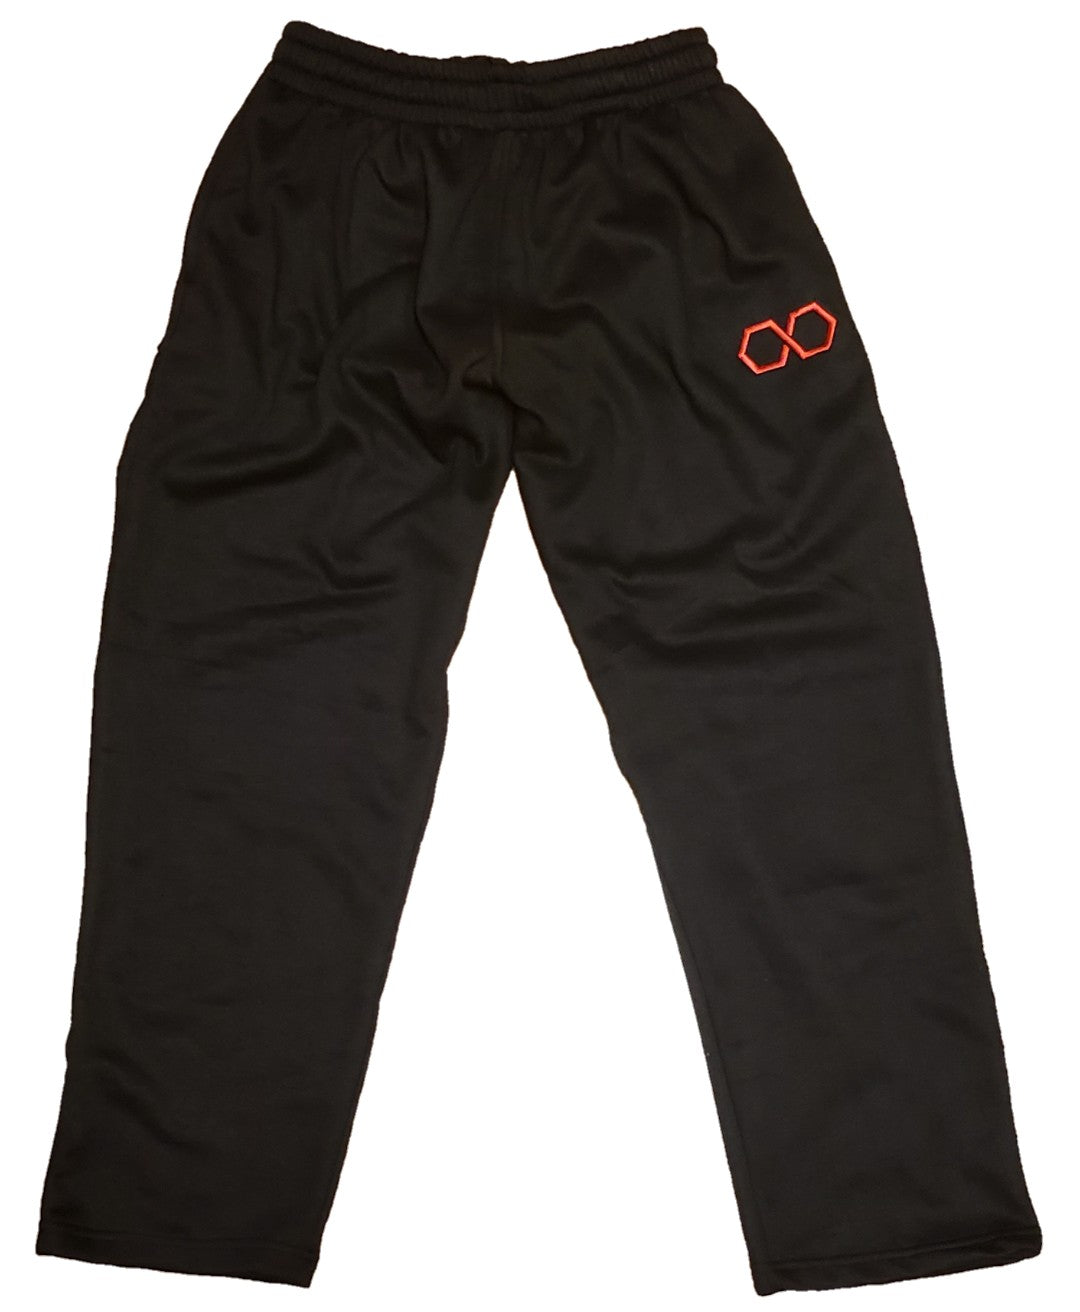 Infinite Elgintensity black sweatpants (flat)